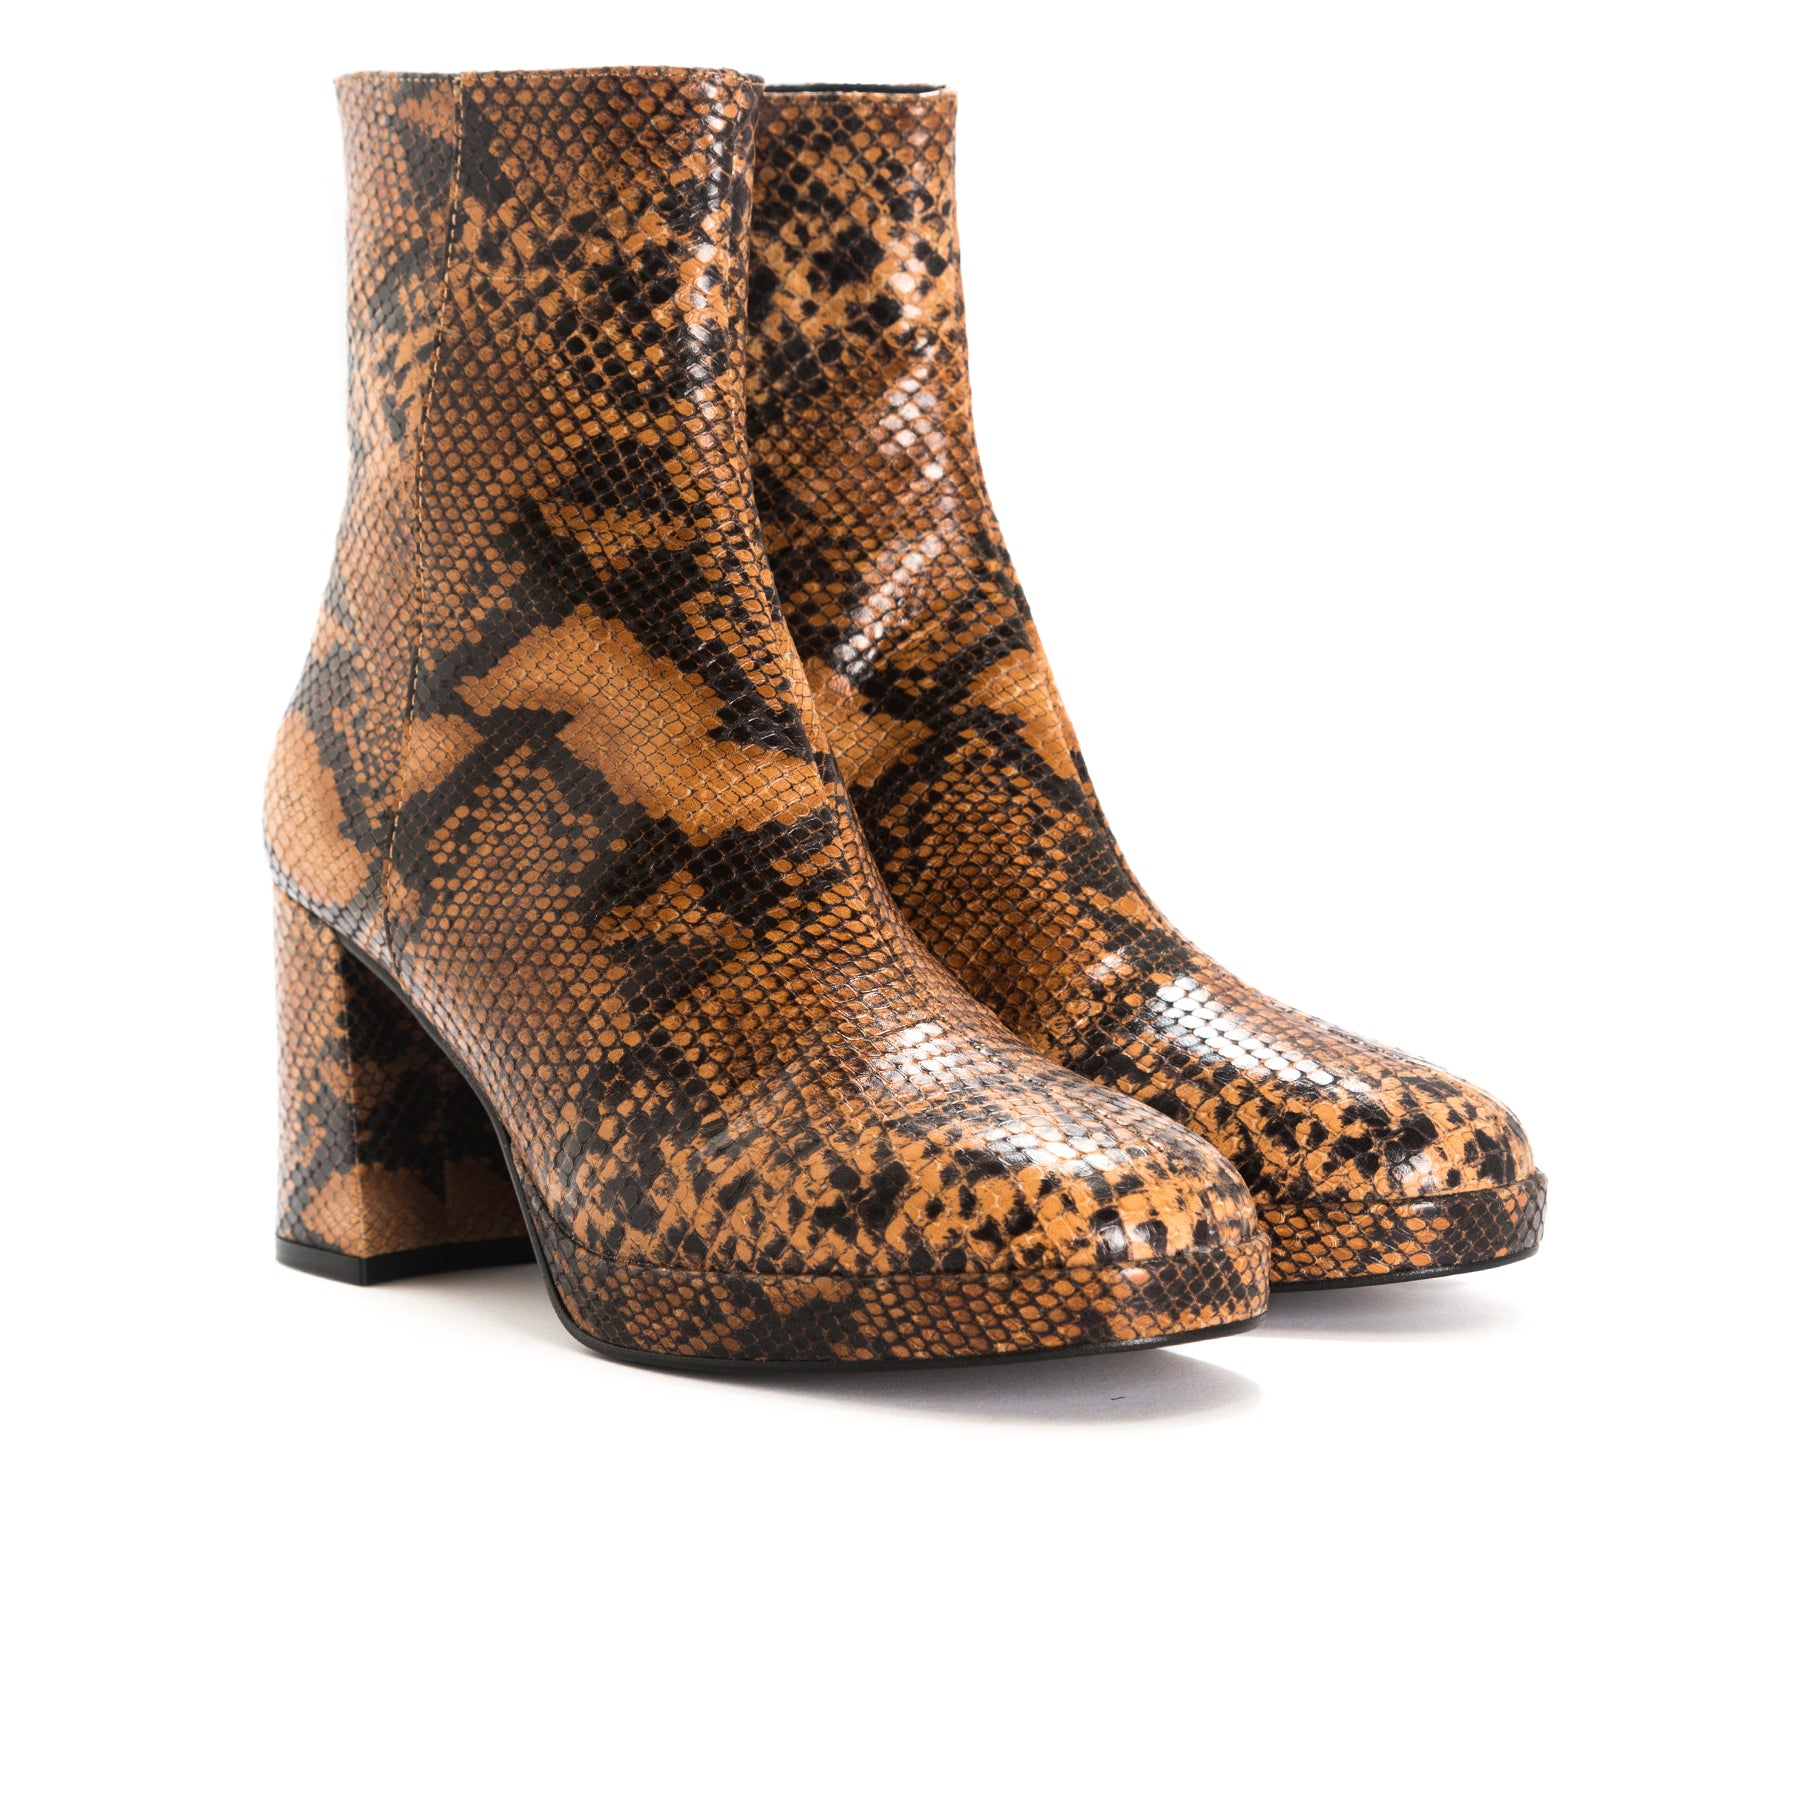 Henessey Tan Snake Leather Booties